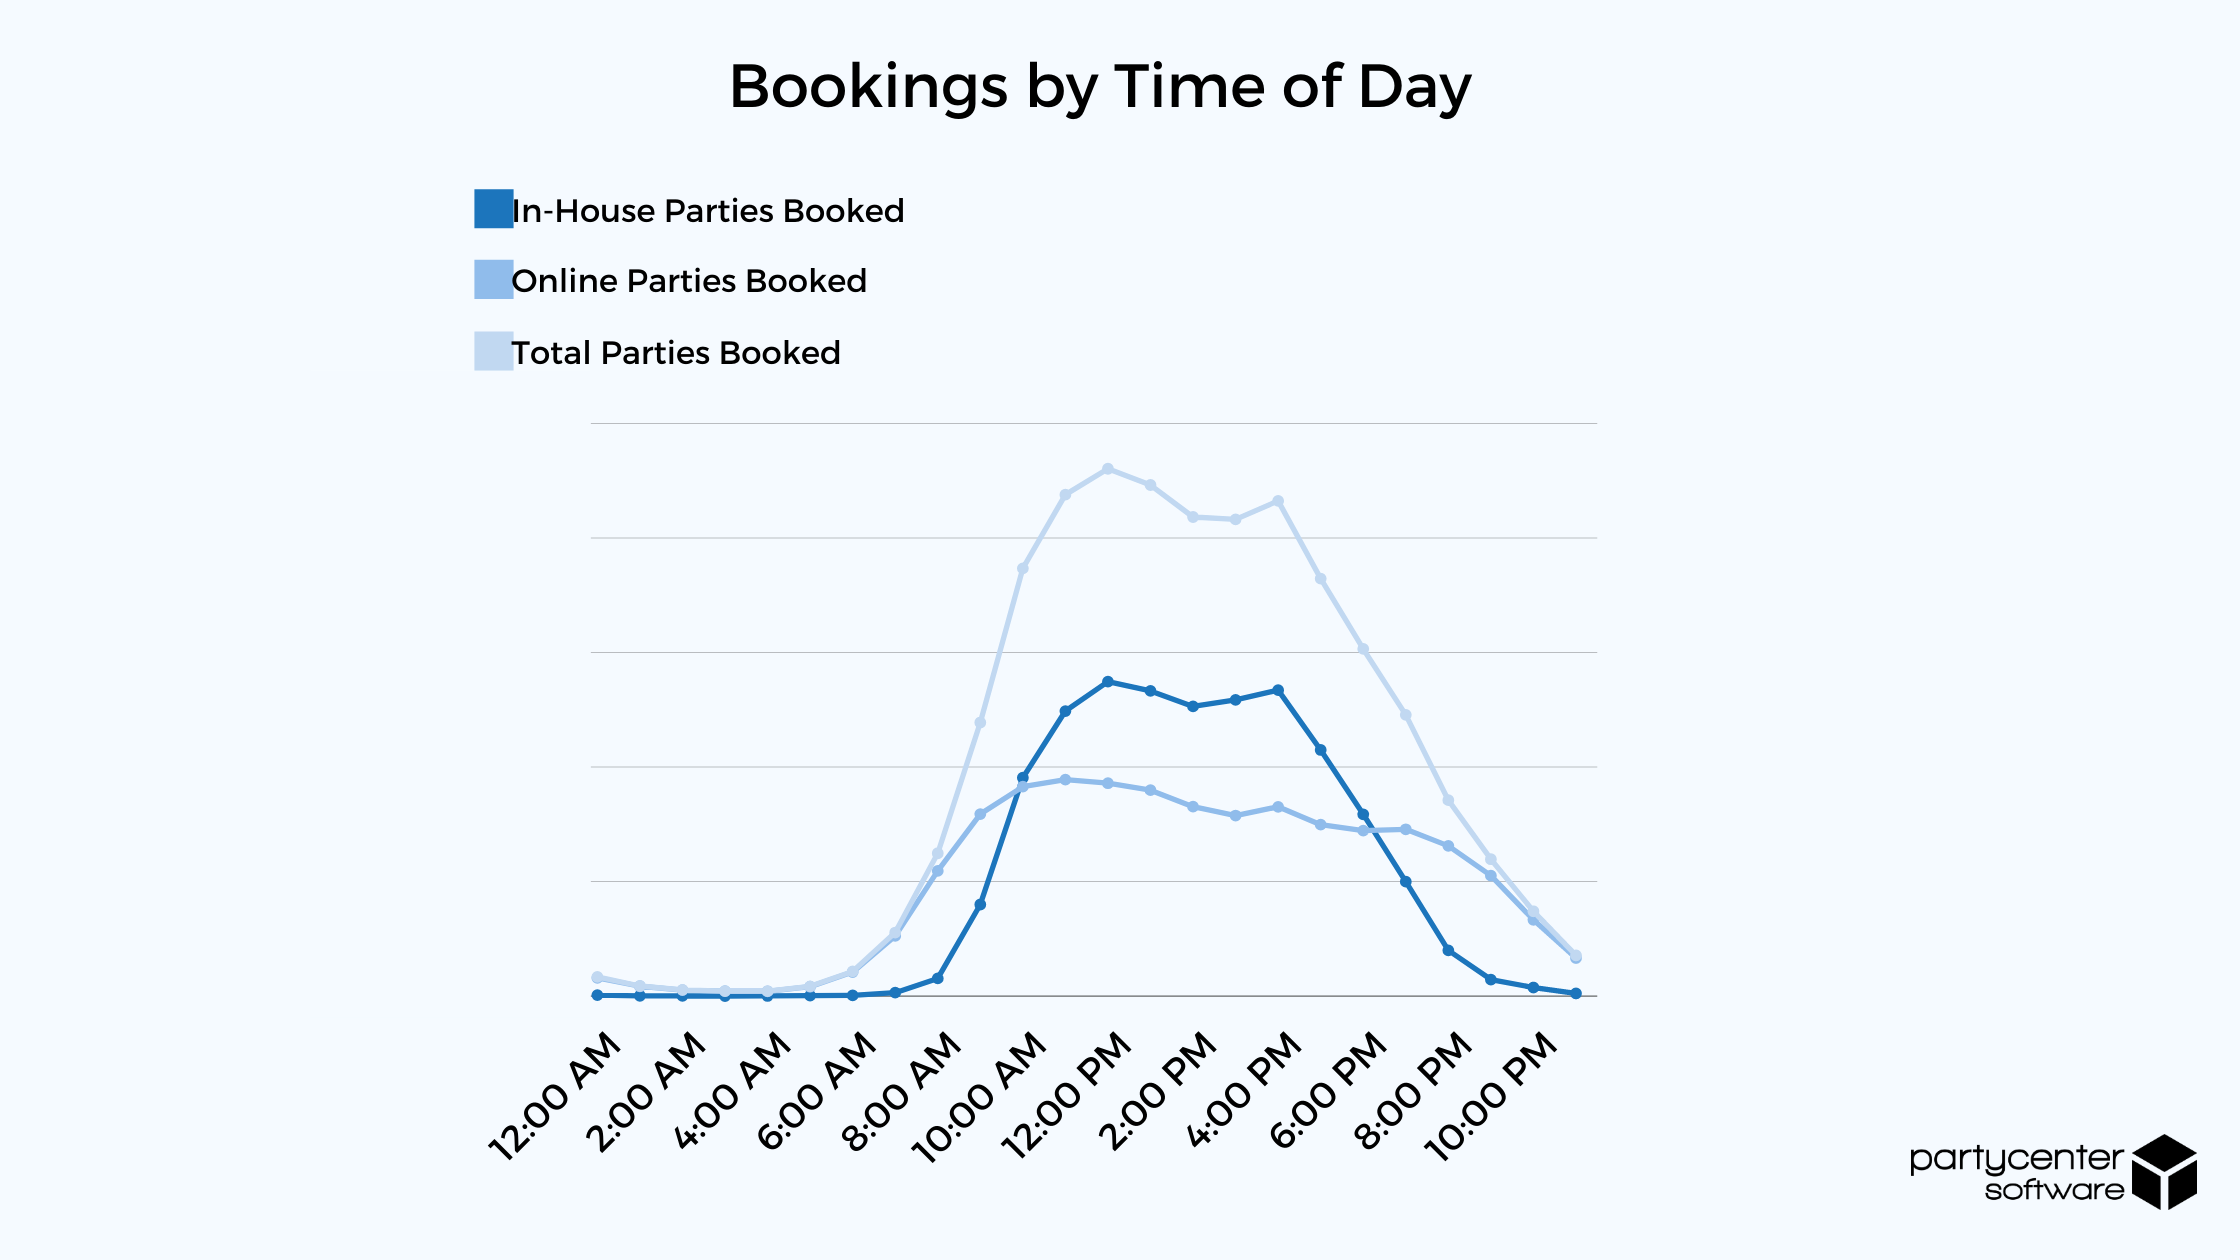 Bookings by Time of Day - 2020